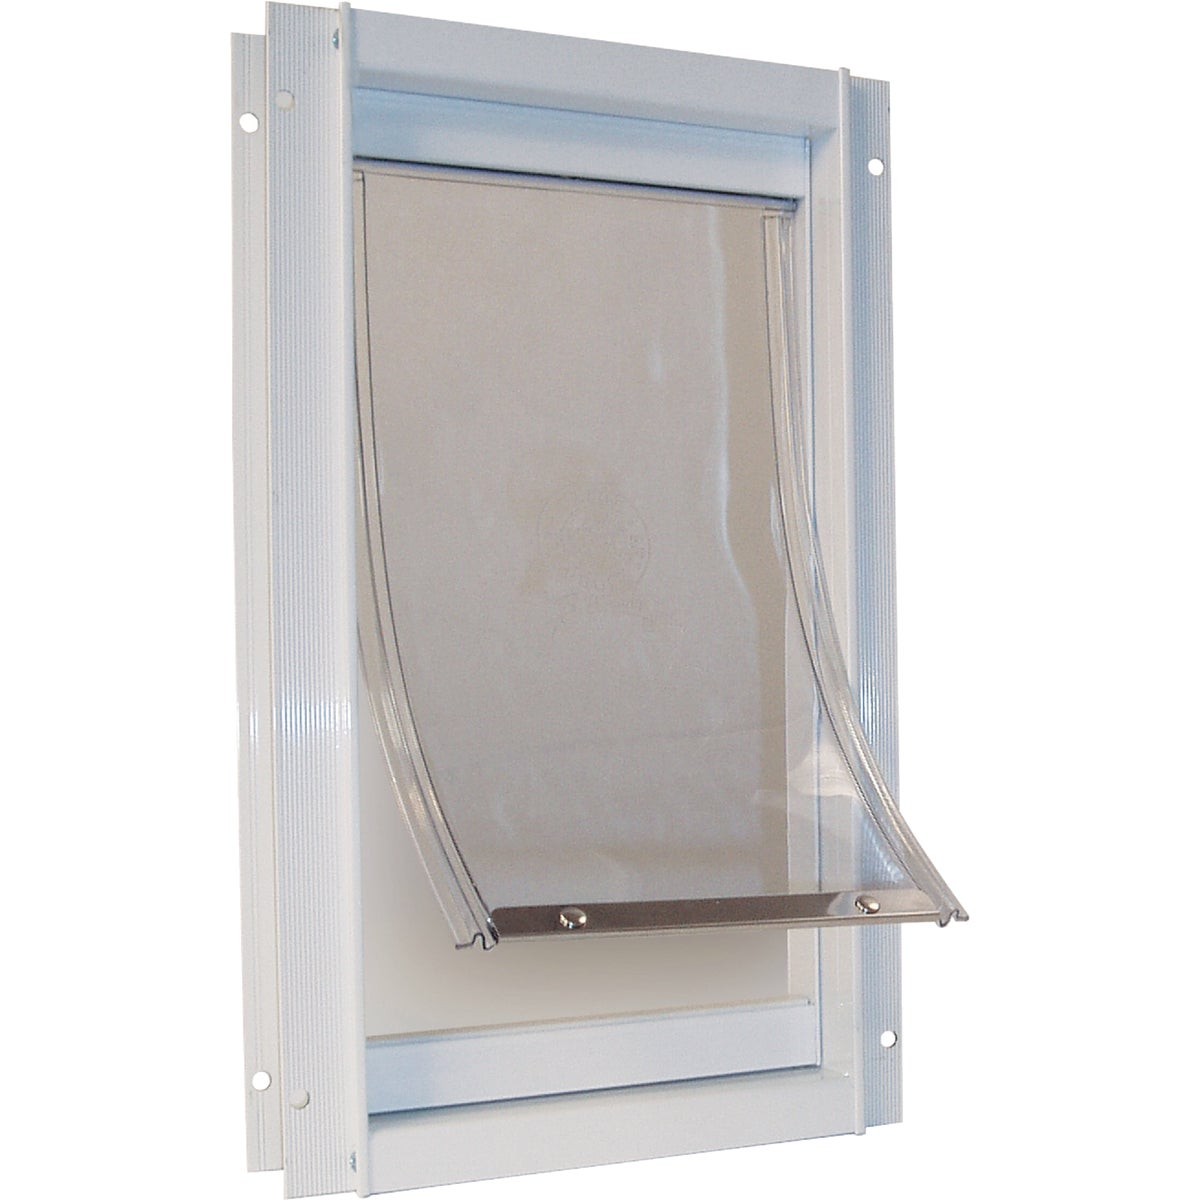 MEDIUM ALUMINUM PET DOOR